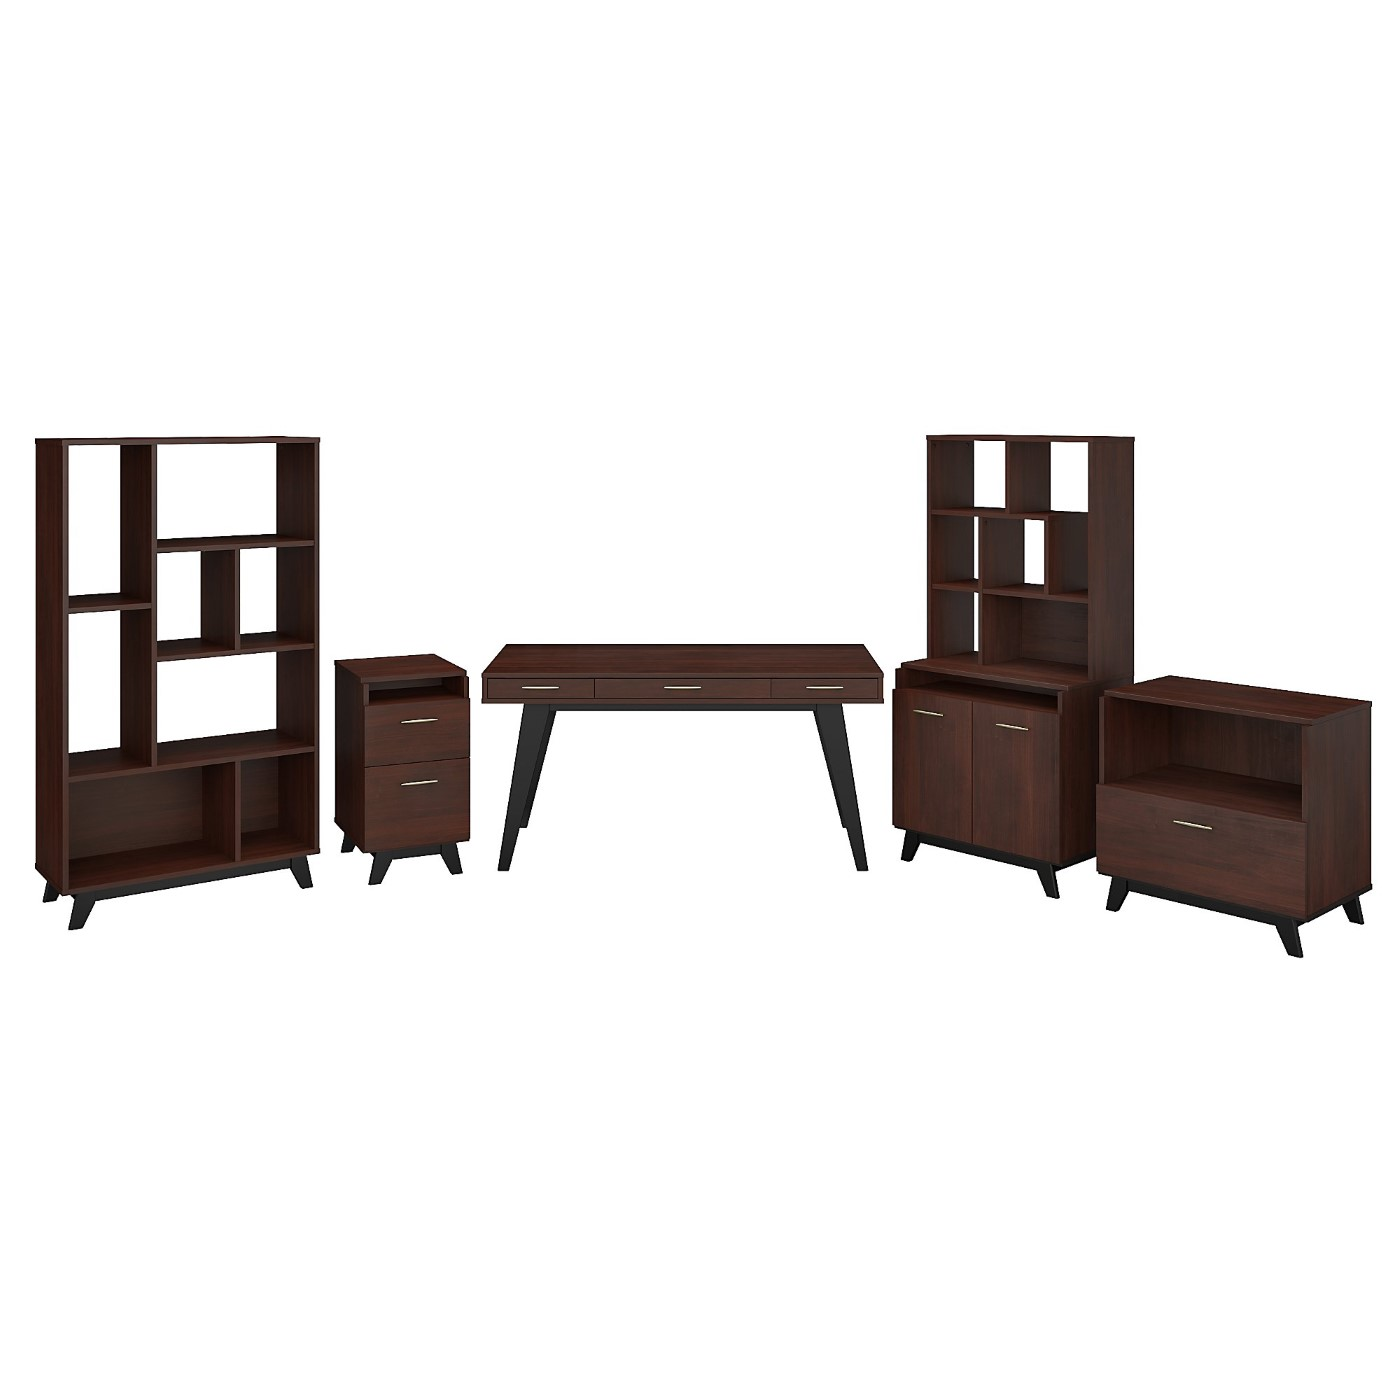 </b></font><b>The kathy ireland� Centura 60W x 30D Writing Desk with File Cabinets, Bookcase, Accent Storage Cabinet and Bookcase Hutch is Sustainable Eco Friendly Furniture. Includes Free Shipping! 30H x 72L x 72W</font>. <p>RATING:&#11088;&#11088;&#11088;&#11088;&#11088;</b></font></b>